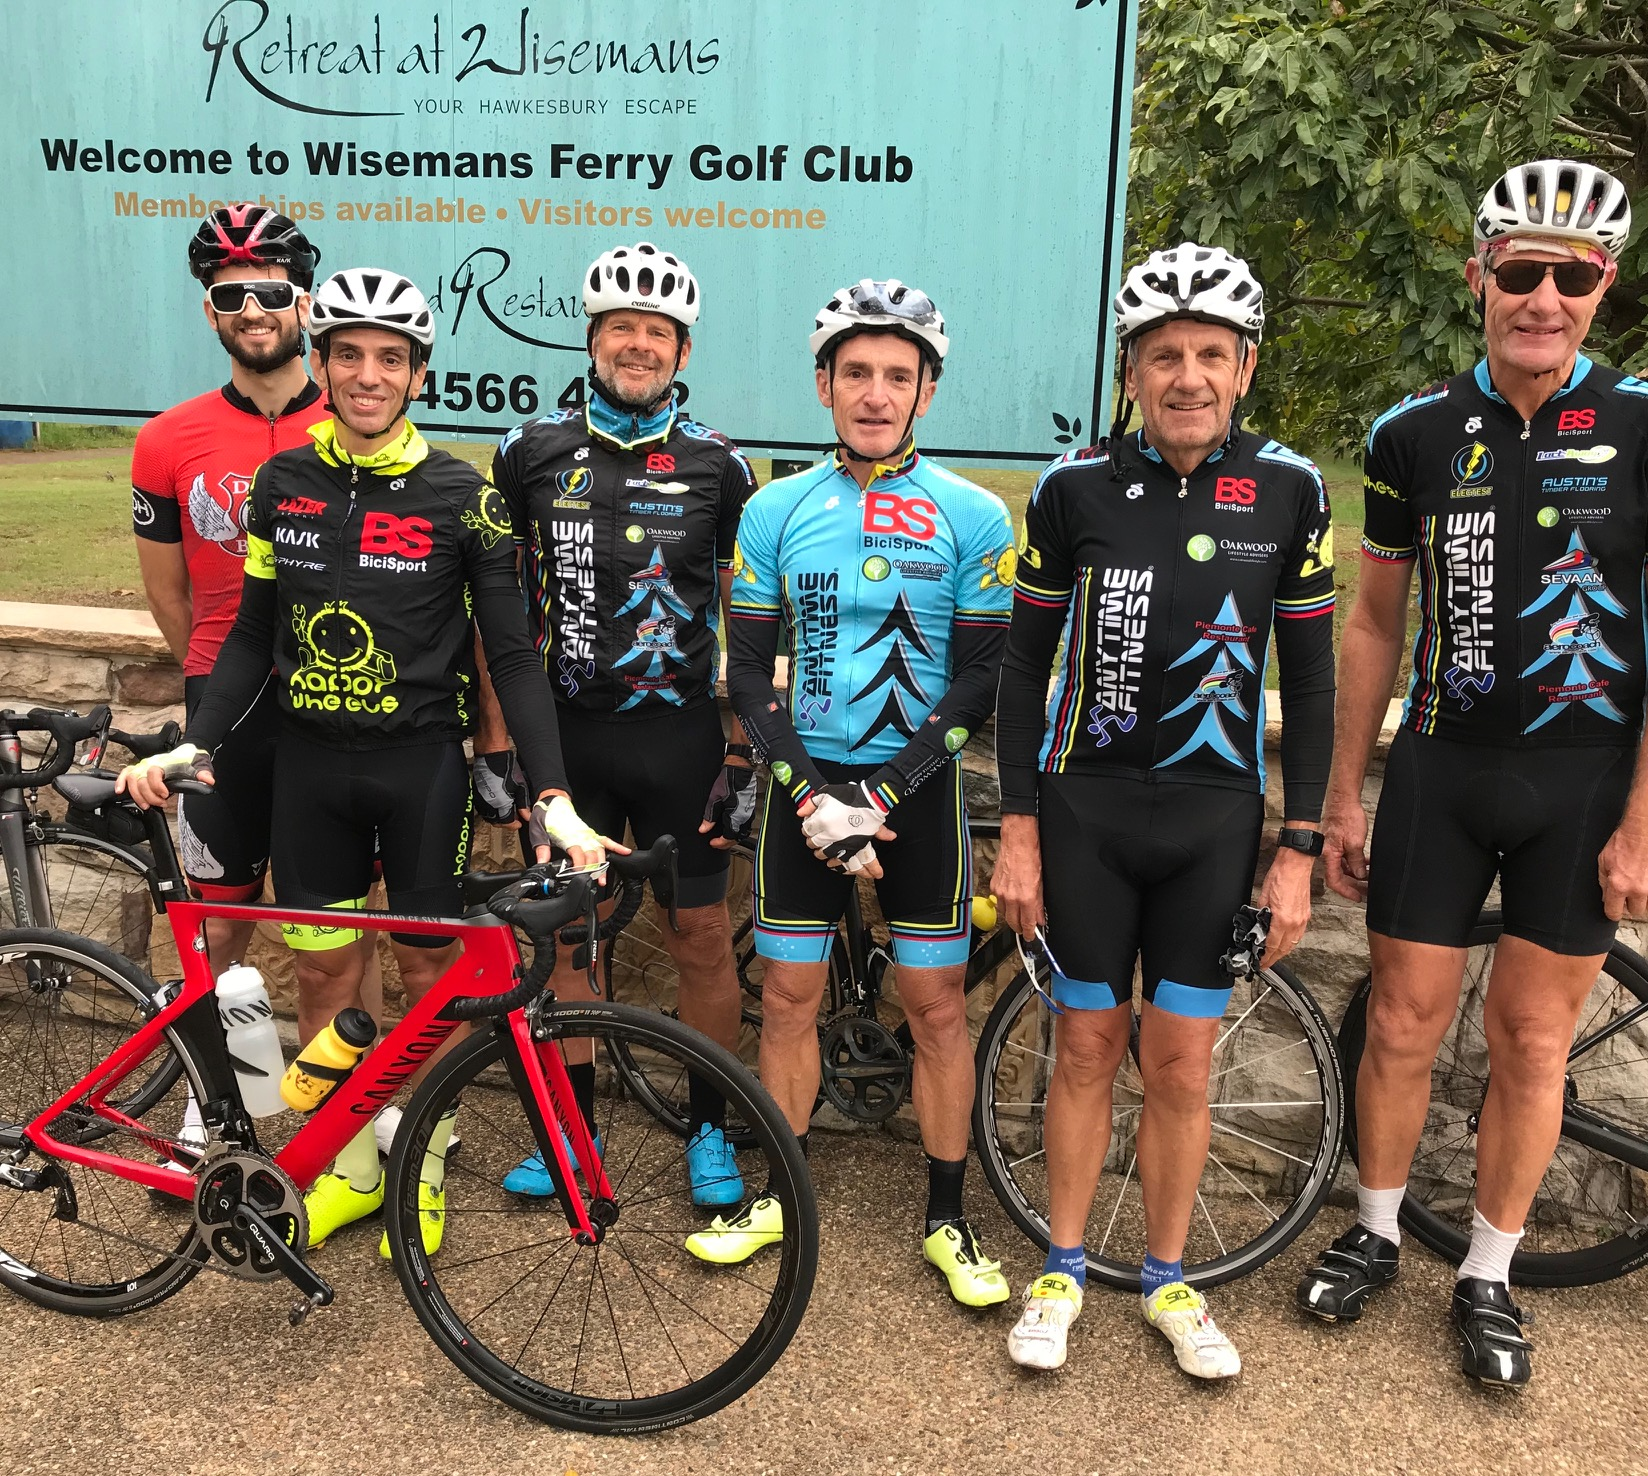 BiciSport Wisemans Loop @ 24 Feb - before the start outside the Retreat at Wisemans Ferry